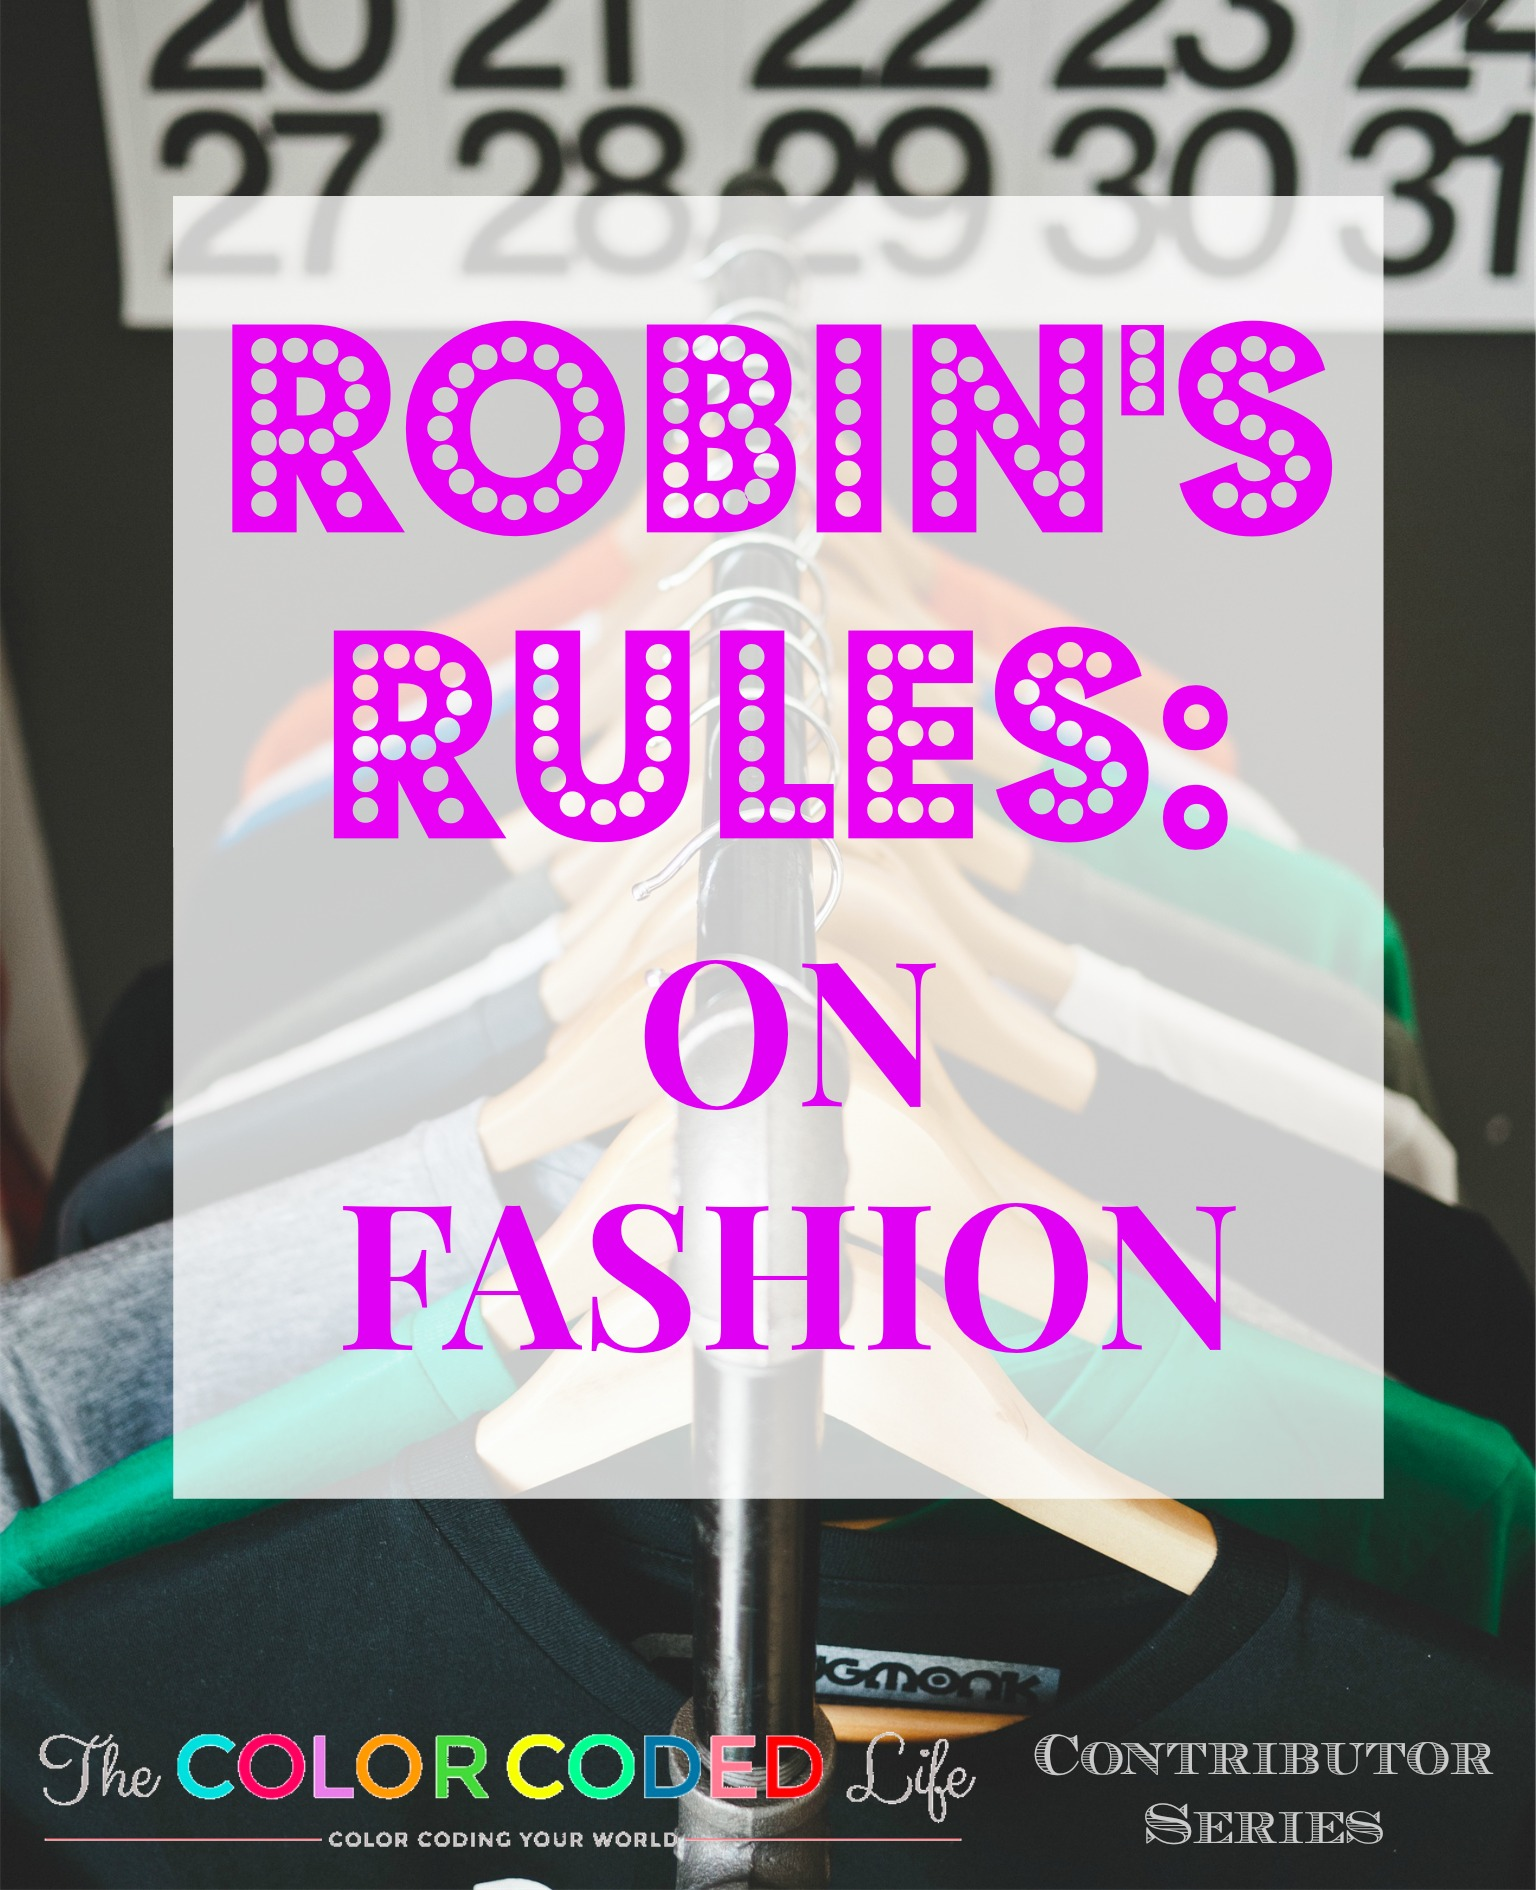 robins rules on fashion